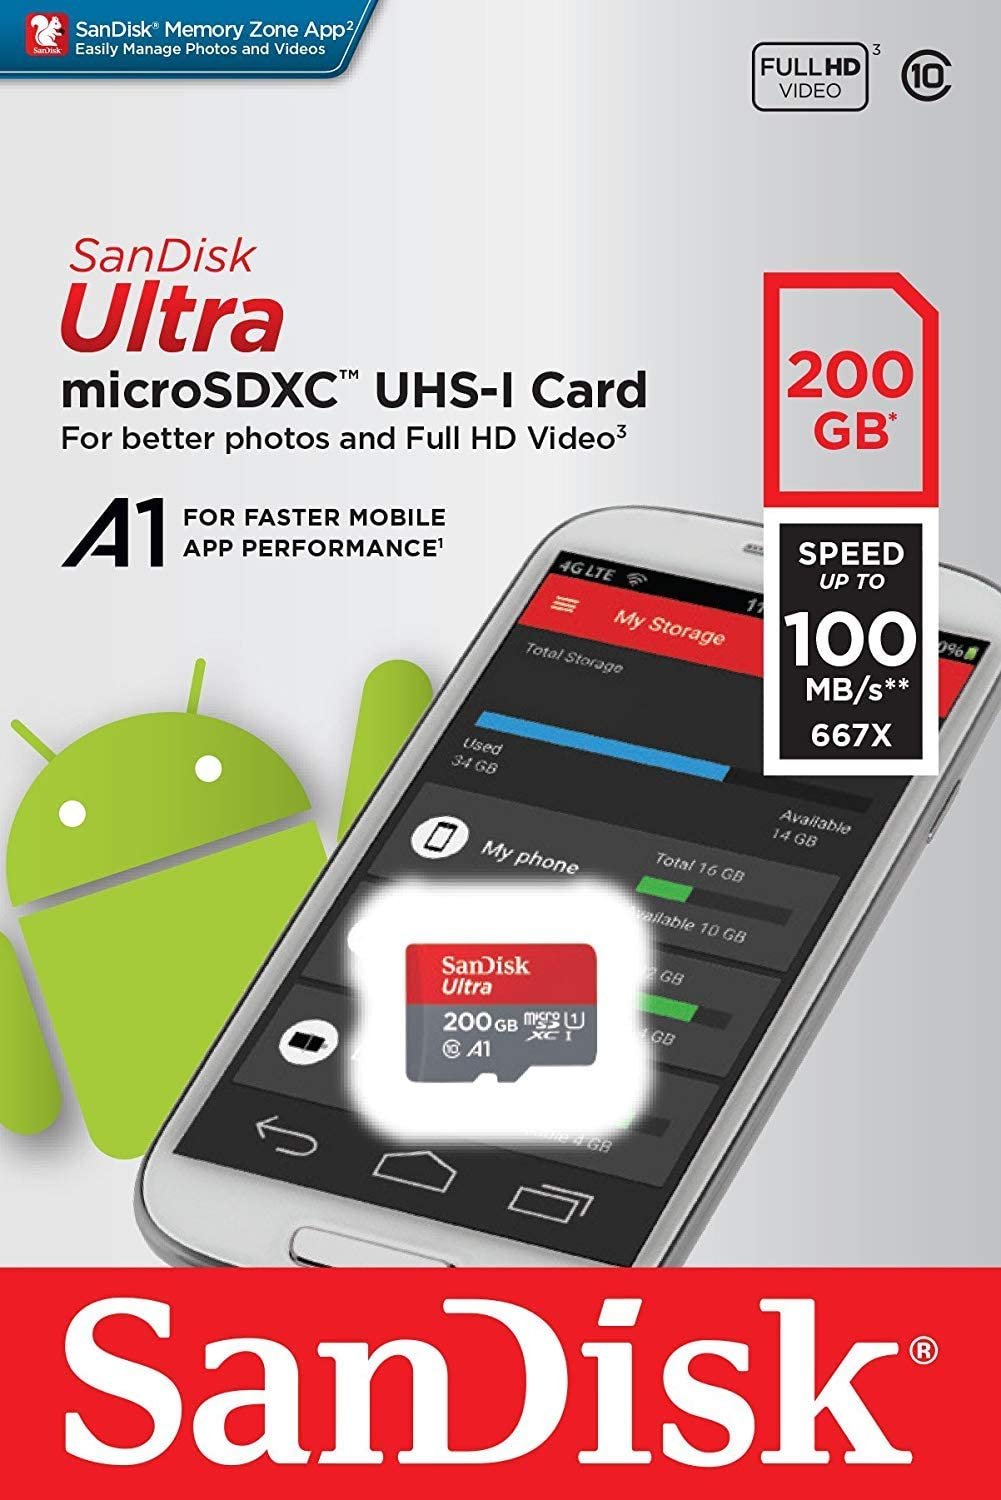 100MBs A1 U1 C10 Works with SanDisk SanDisk Ultra 200GB MicroSDXC Verified for Xiaomi Redmi 3S Prime by SanFlash